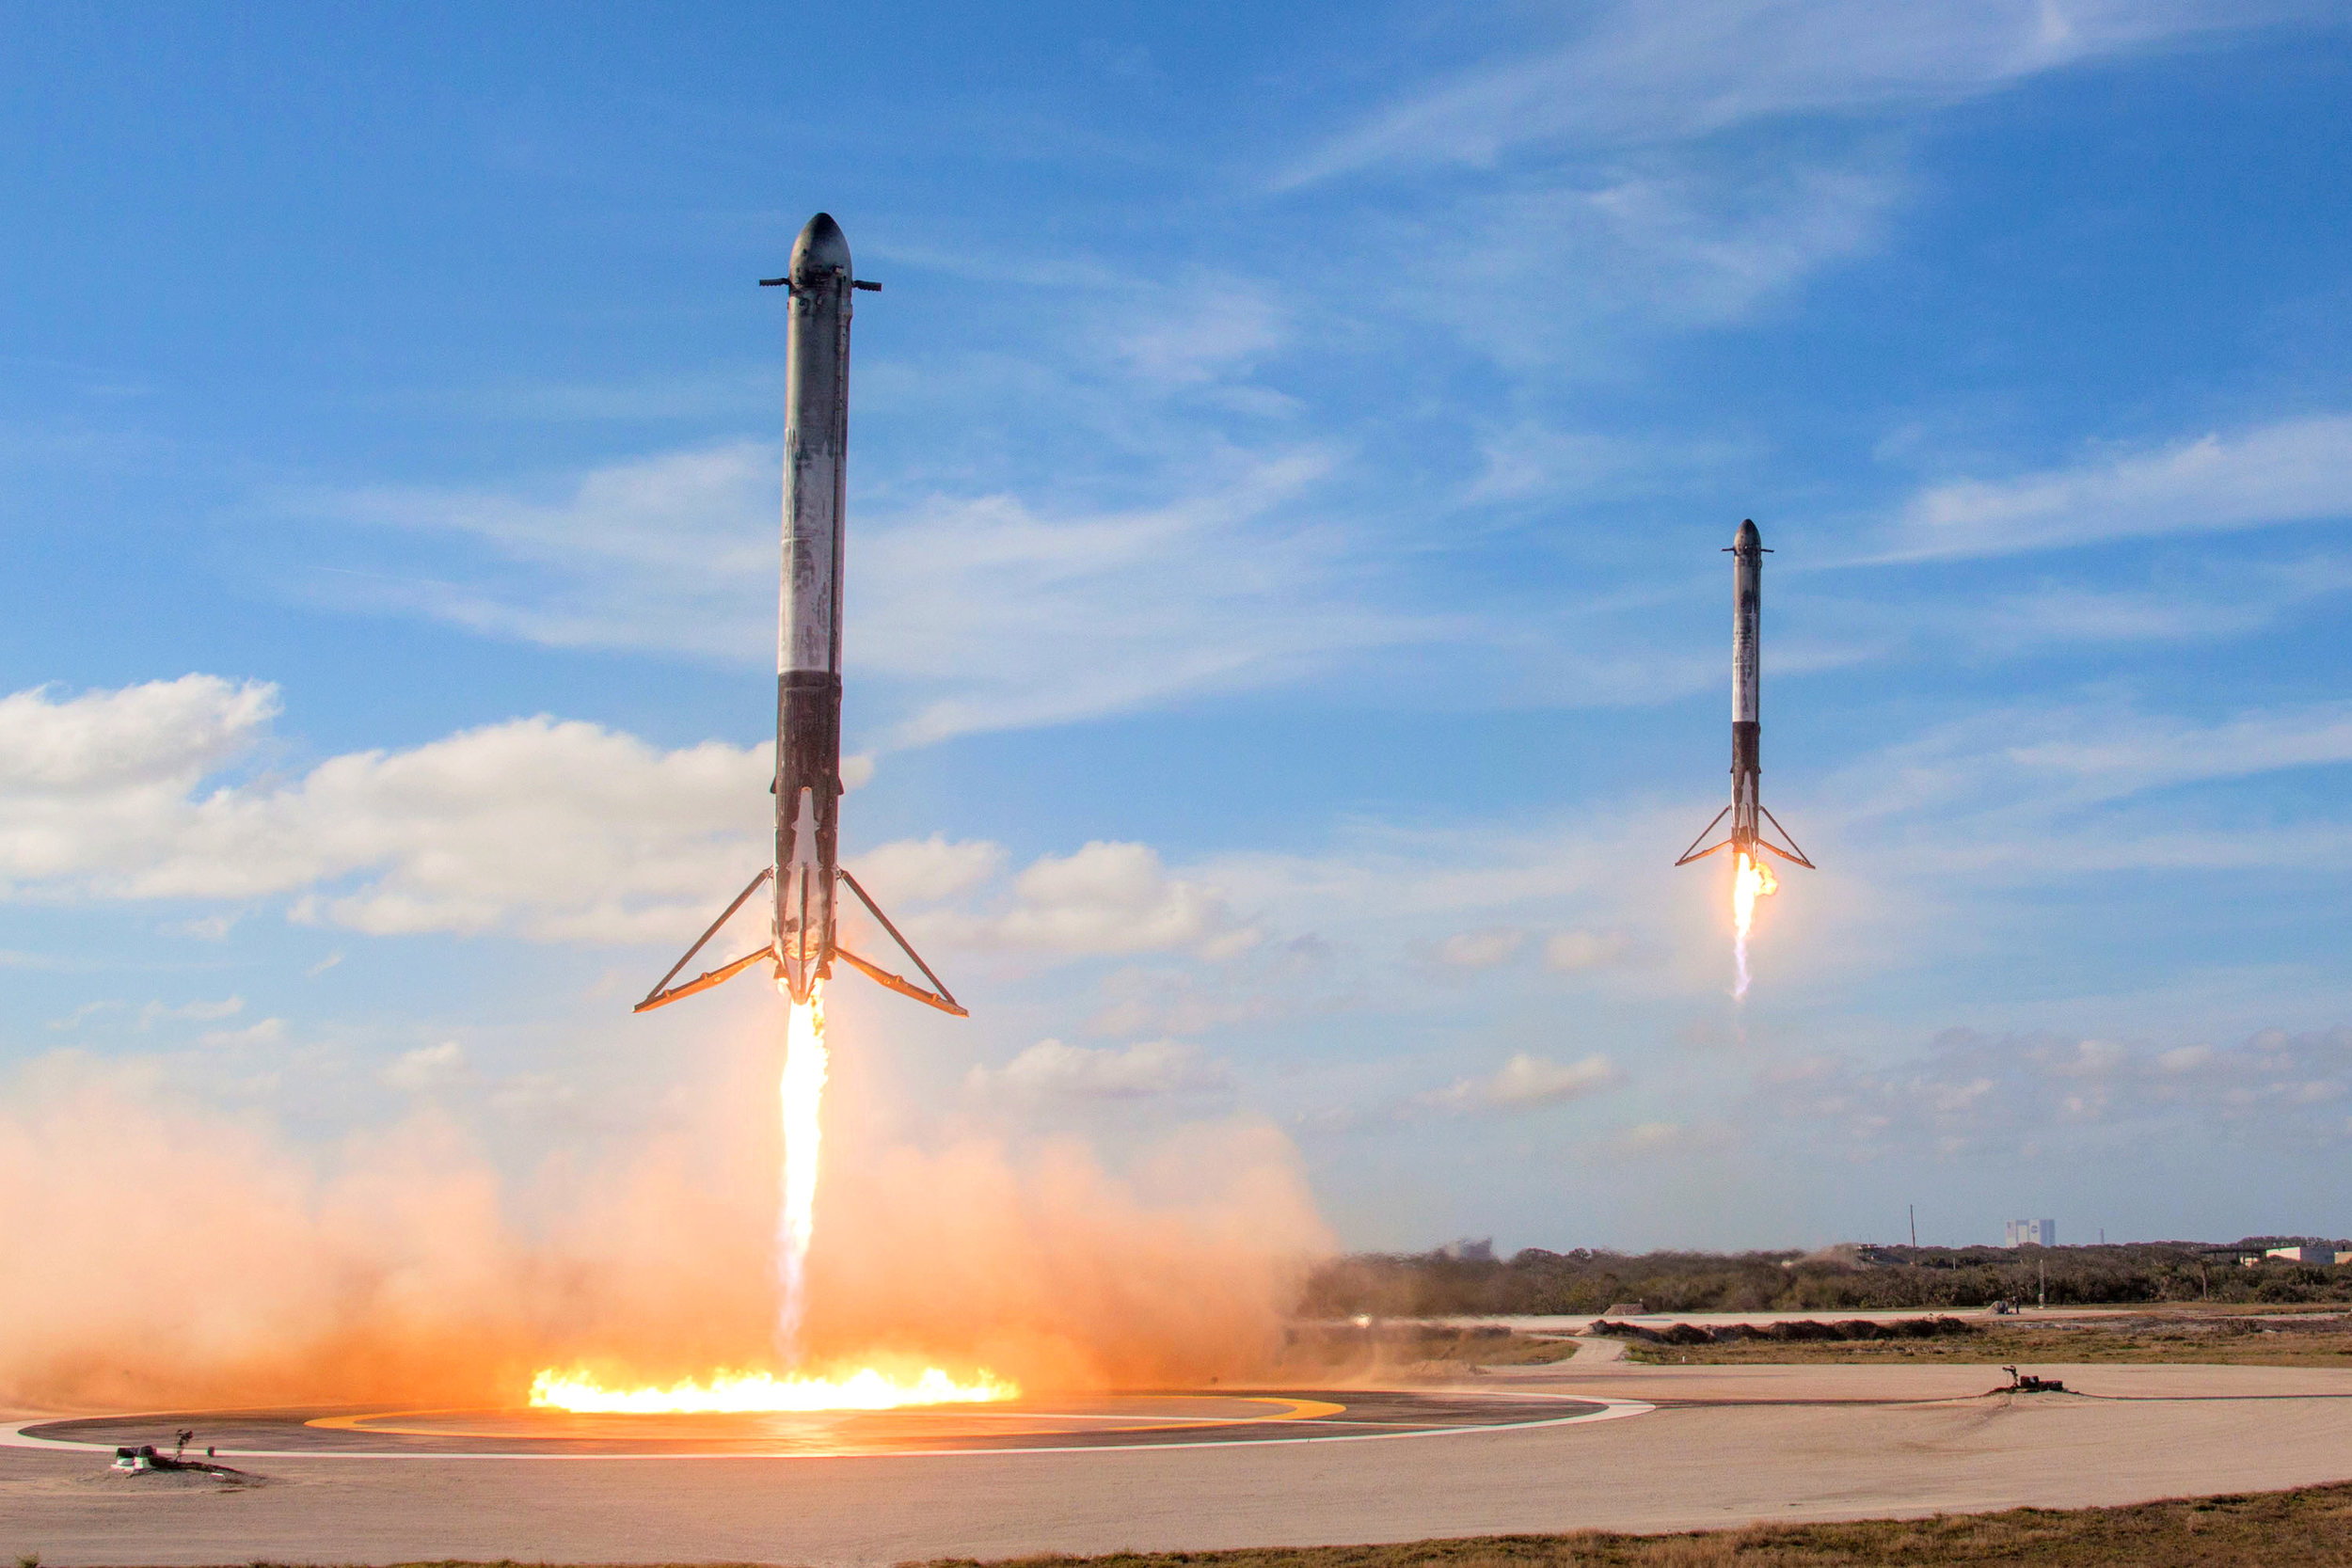 Falcon Heavy side boosters above Landing Zones 1 and 2, February 2018. Photo credit: SpaceX